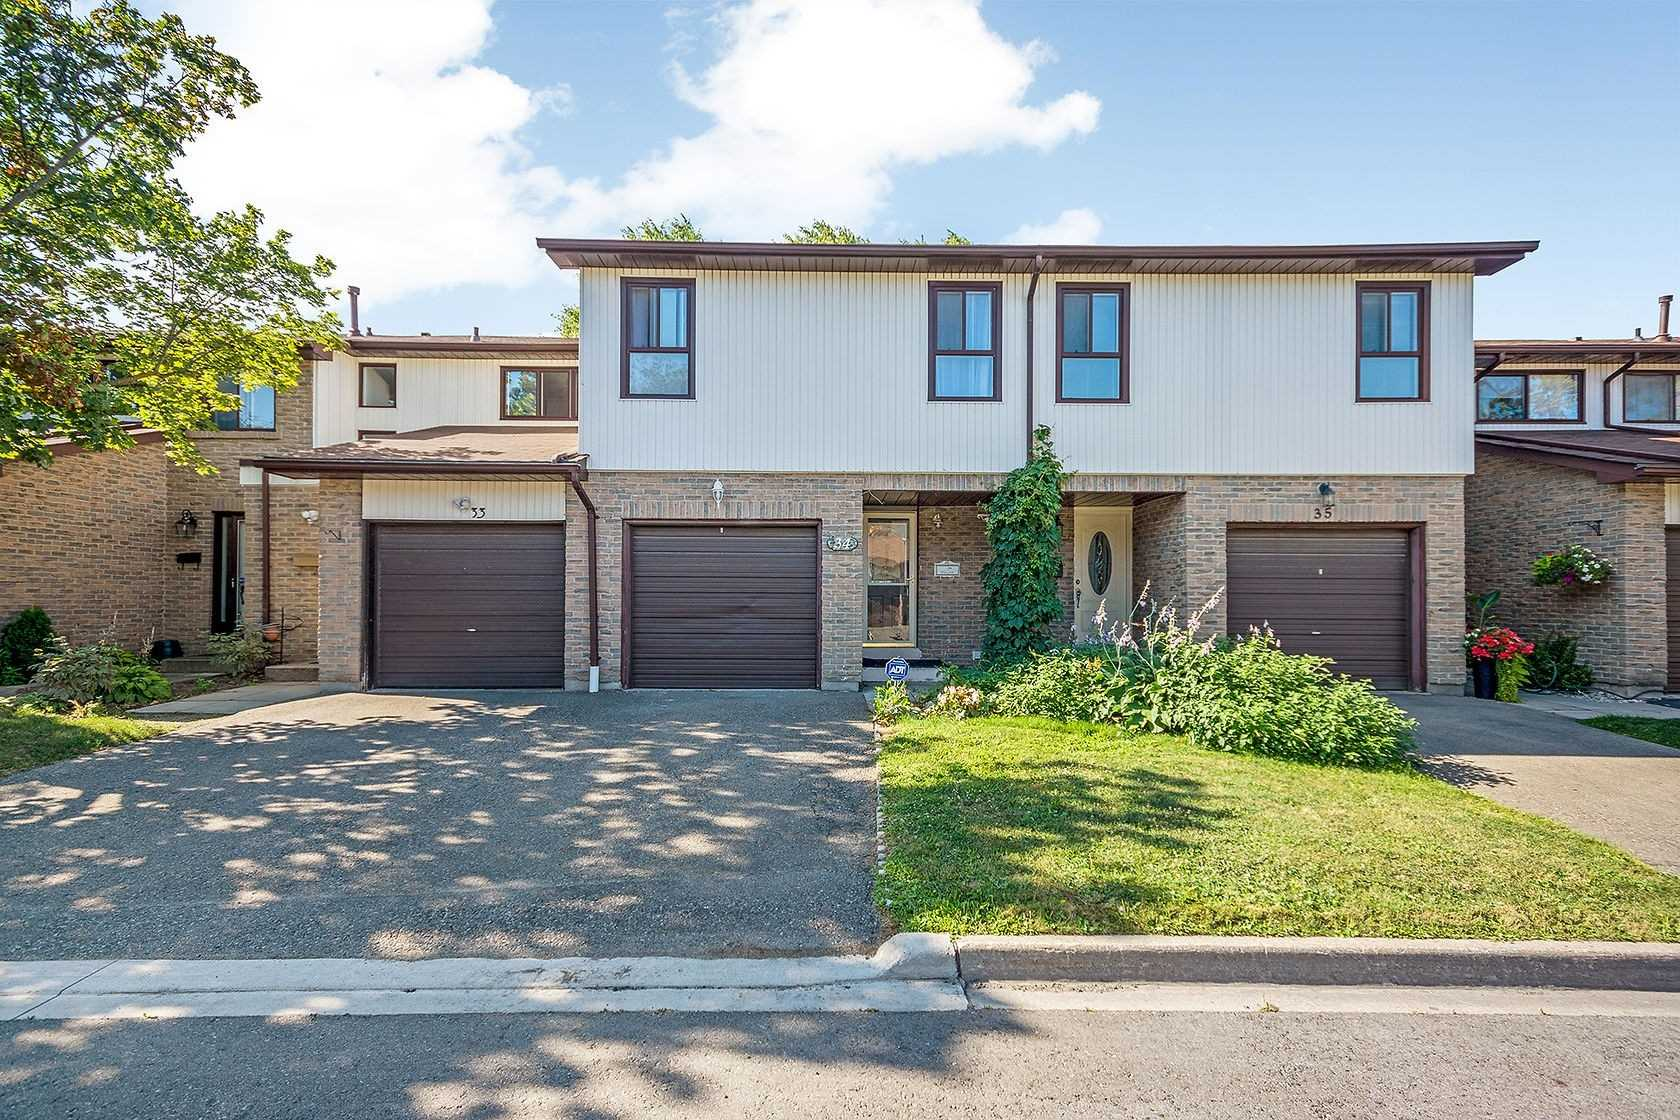 34 Foster Cres - W4991466- $584,900